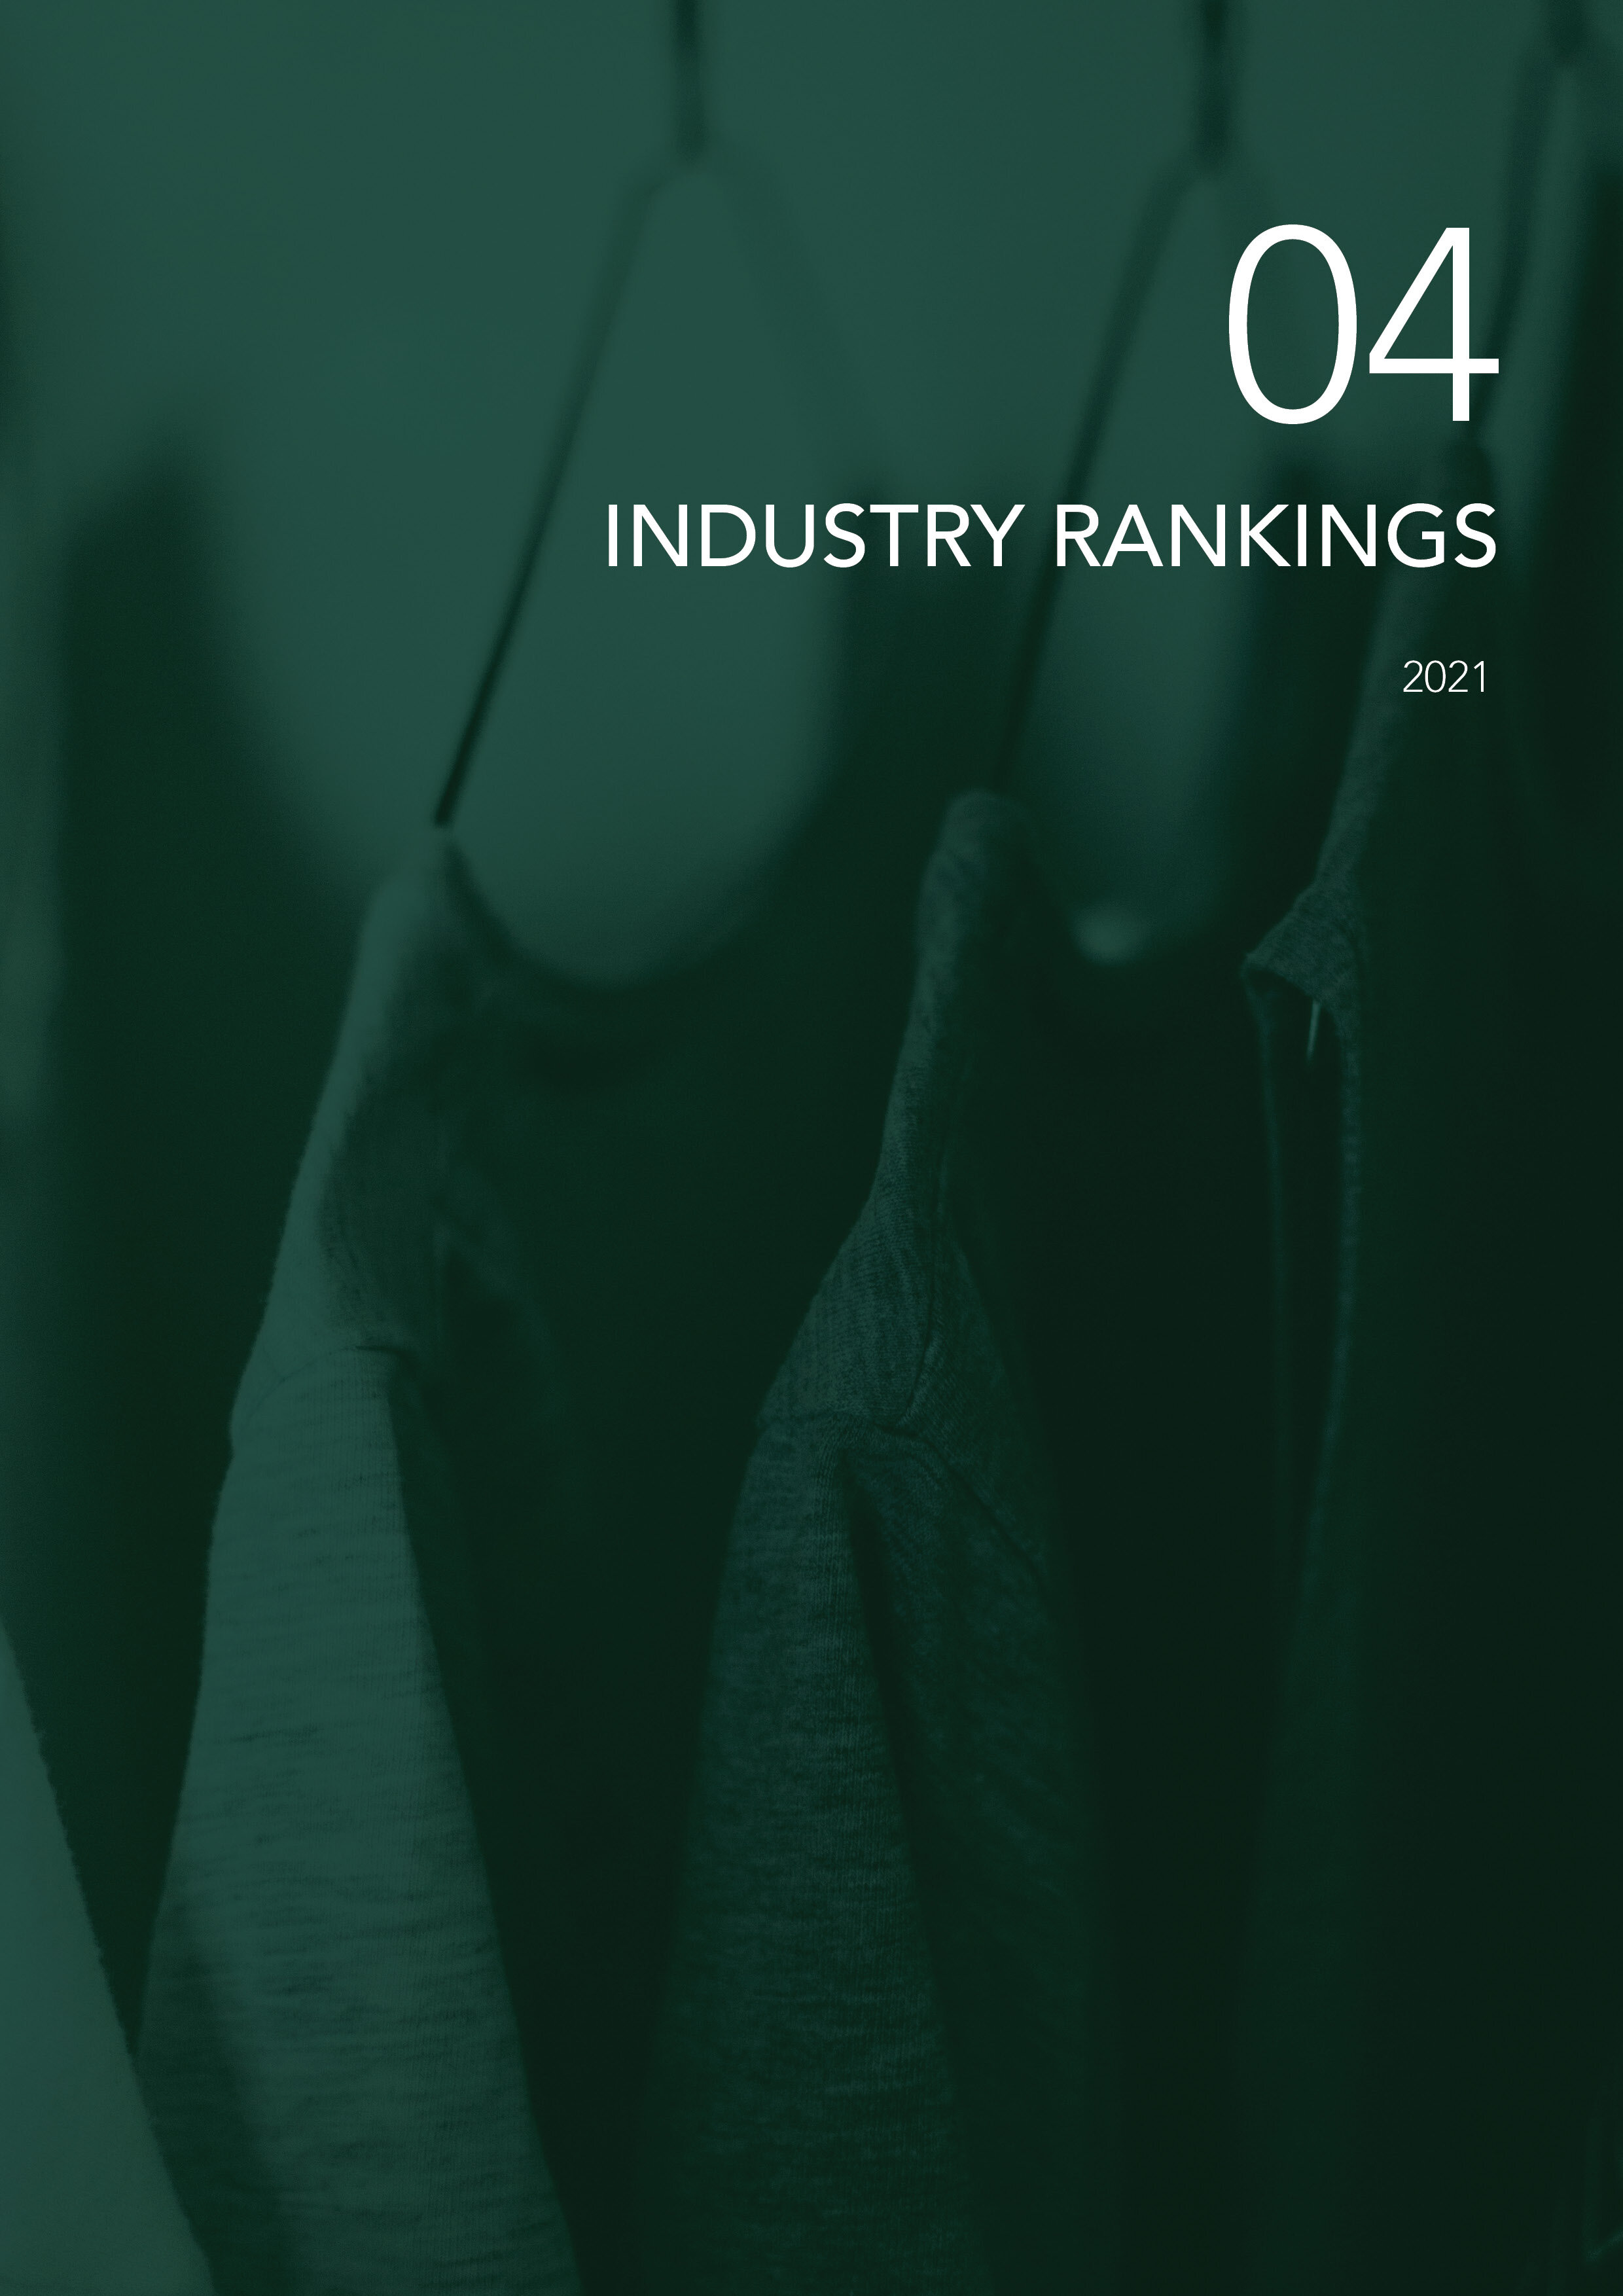 FI_Official Report_2021_Sustainable Brand Index44.jpg